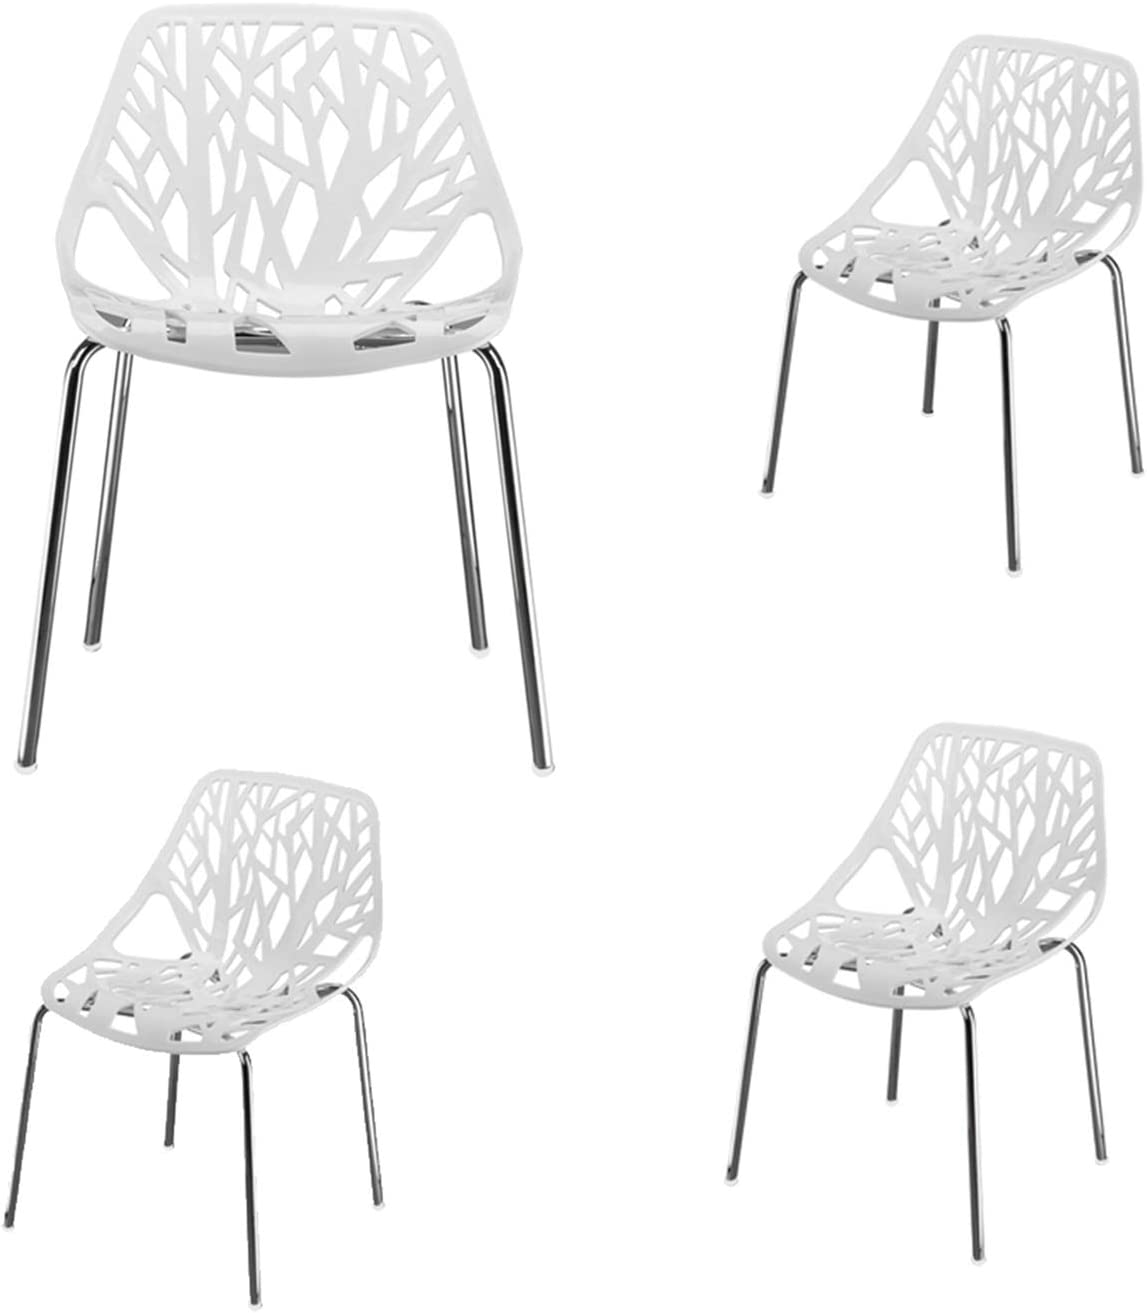 4pcs Bird's Nest Style Lounge Chair White Dining Chair Indoor-Outdoor Industrial Vintage Chairs Bistro Kitchen Cafe Chair